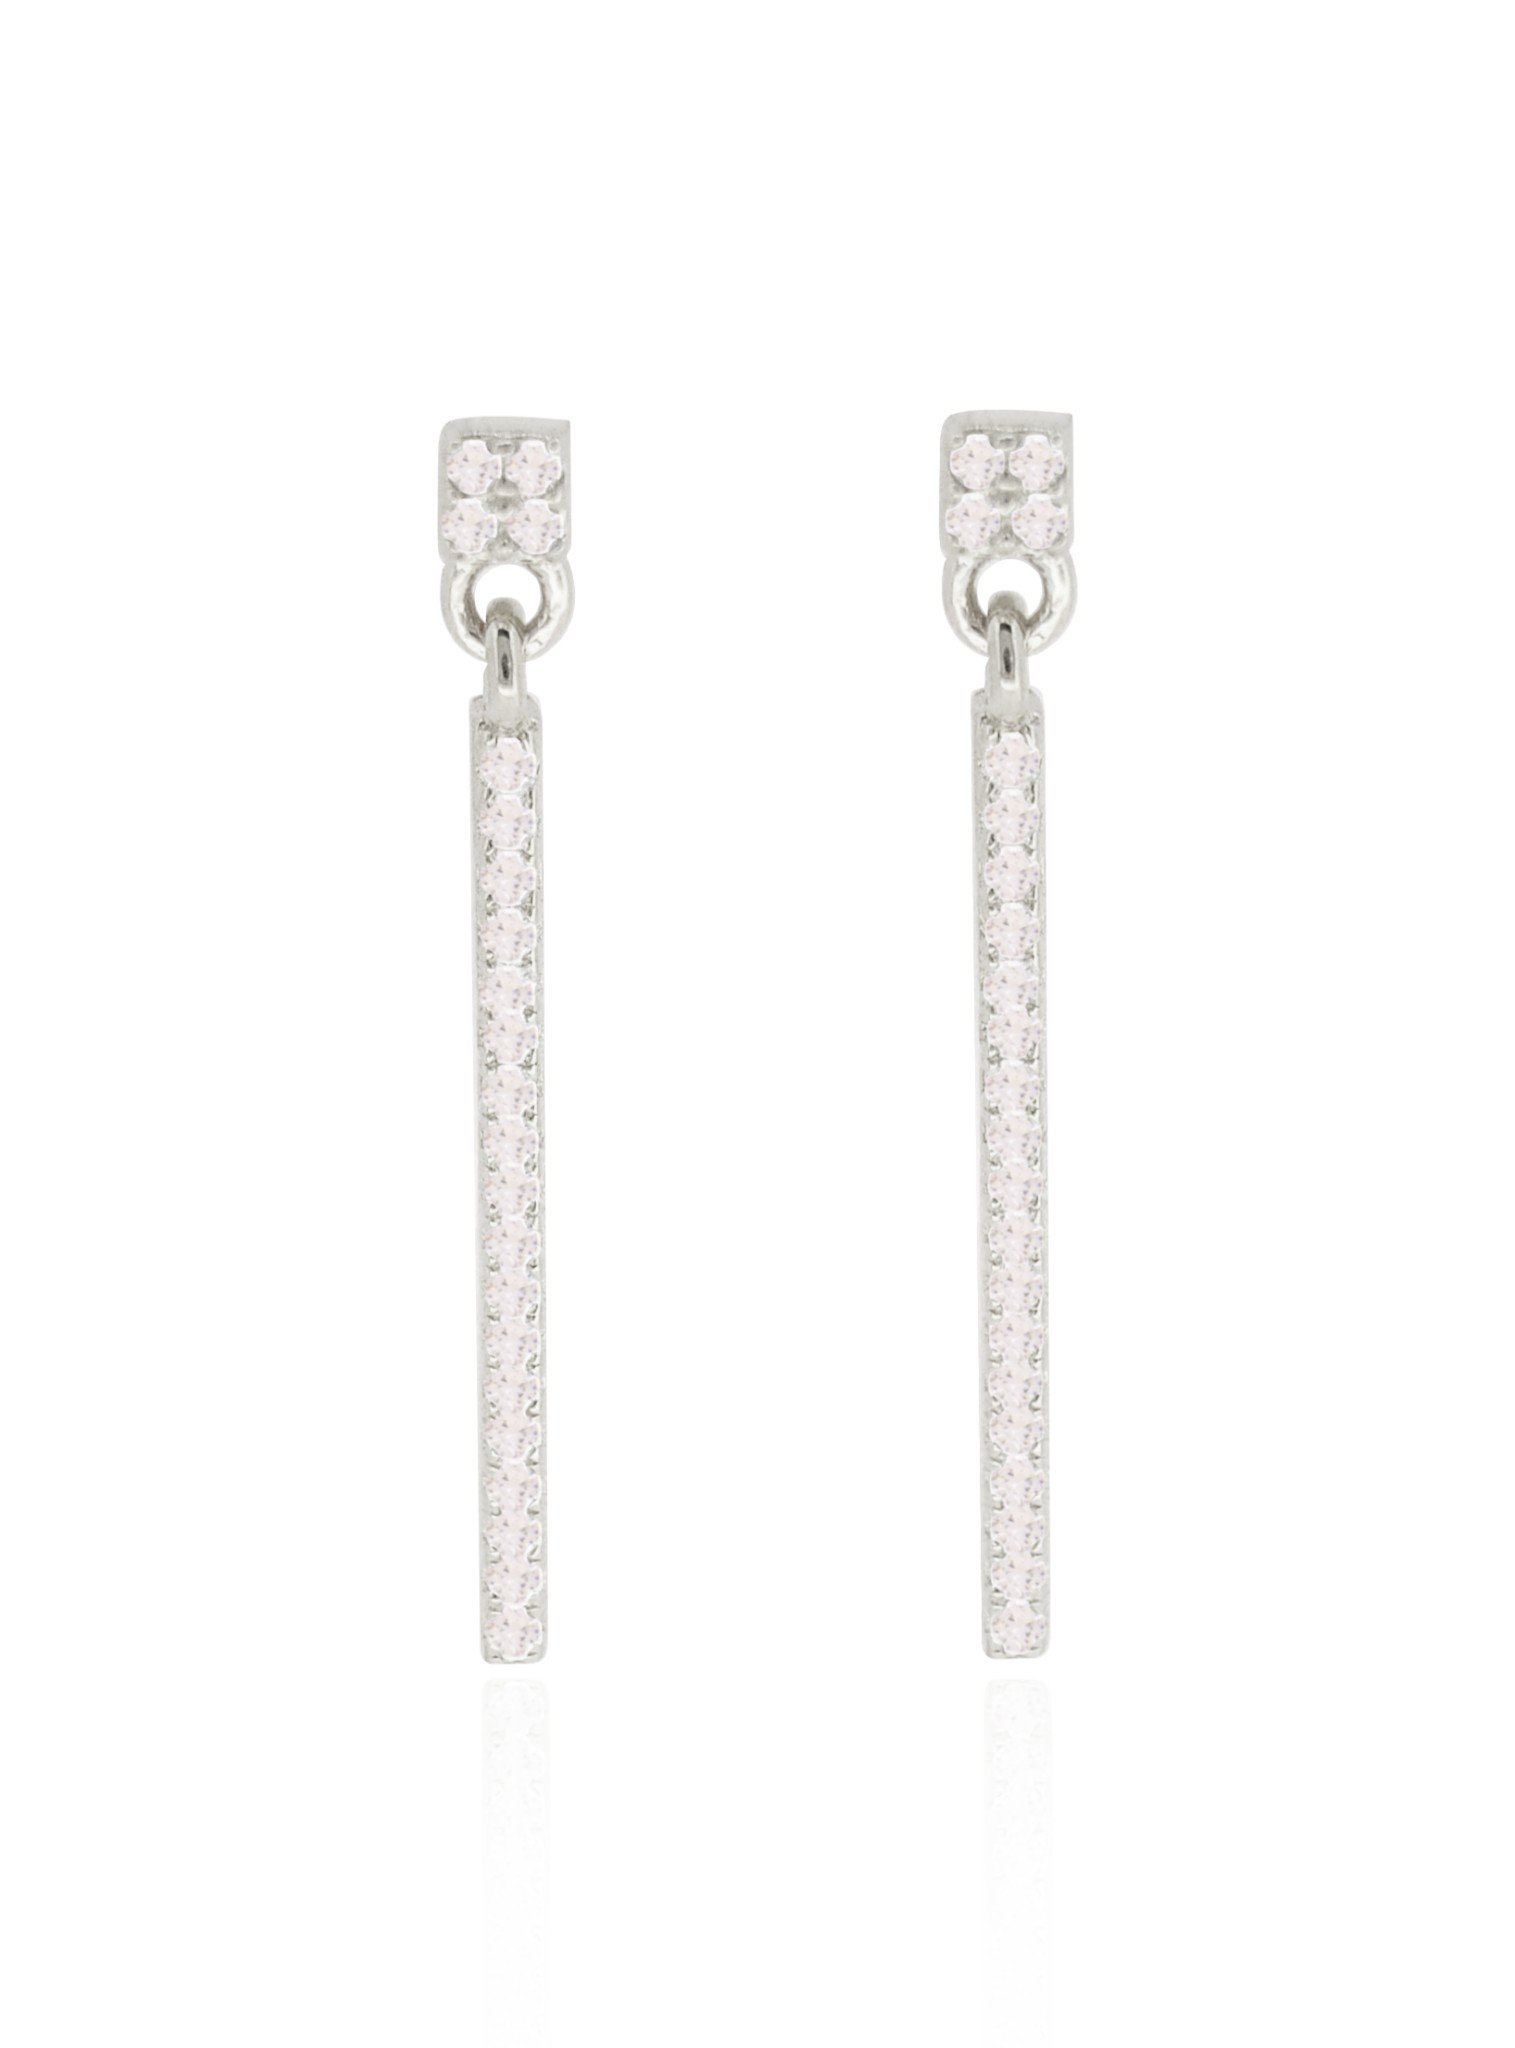 Emilia CZ Swinging Bar Earrings in Sterling Silver